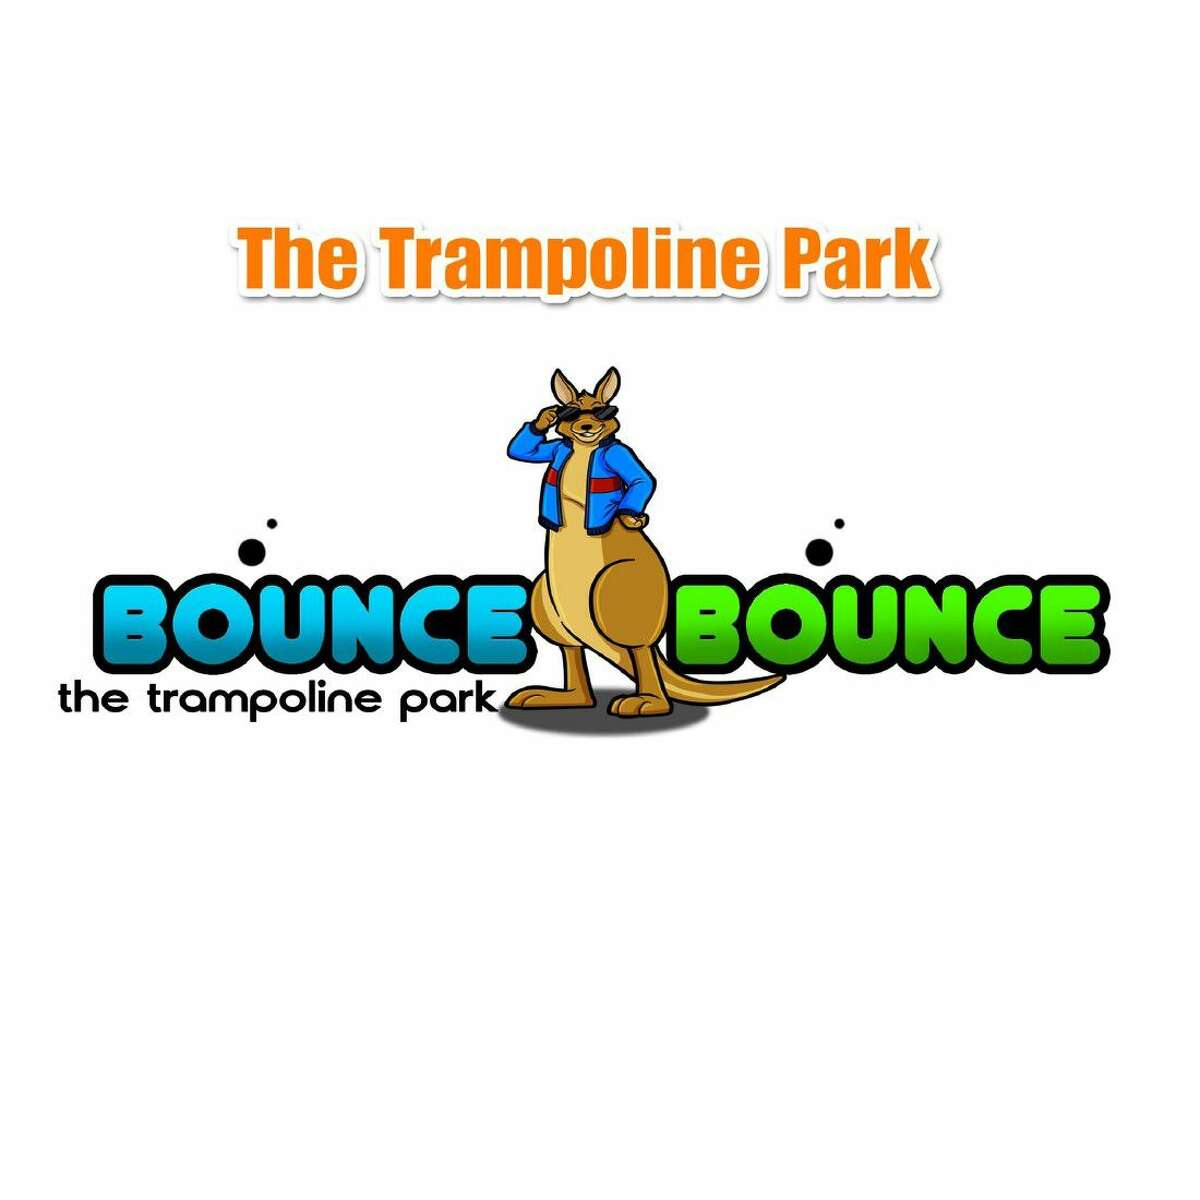 Bounce Bounce Park is located at 7955 Barker Cypress Rd.